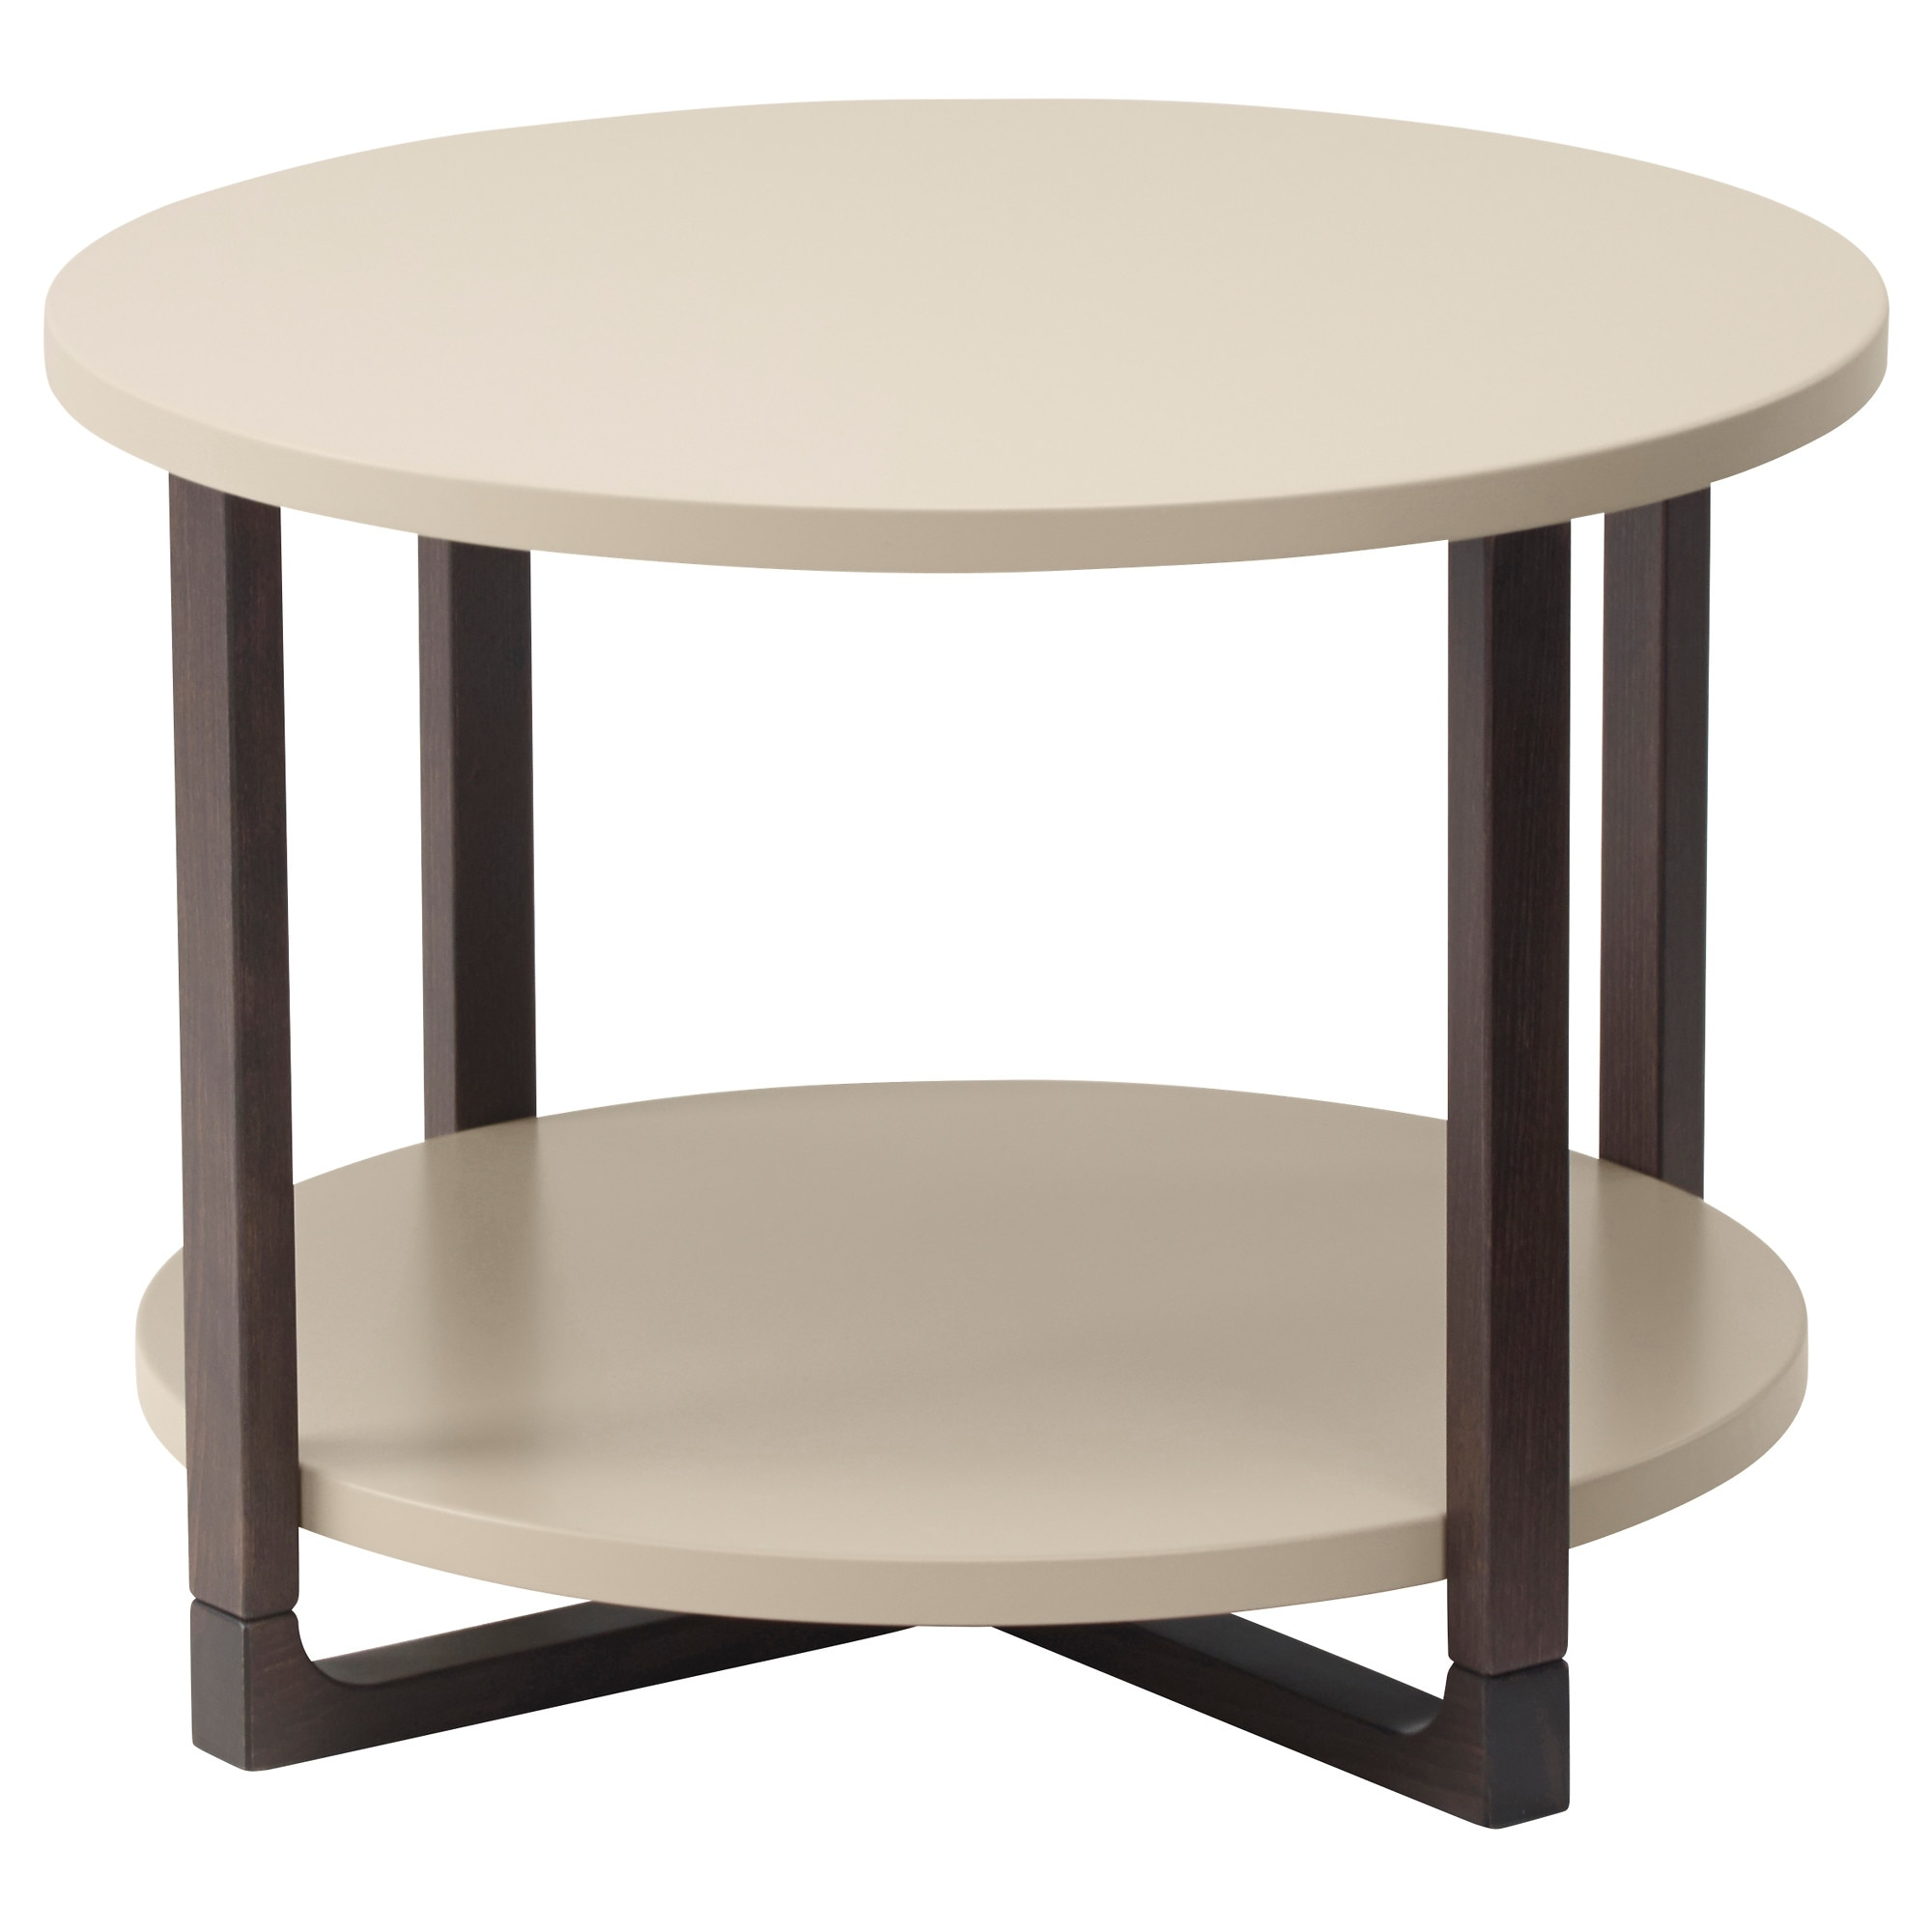 Ikea leksvik coffee table - Rissna Side Table Beige Height 17 3 4 Diameter 23 5